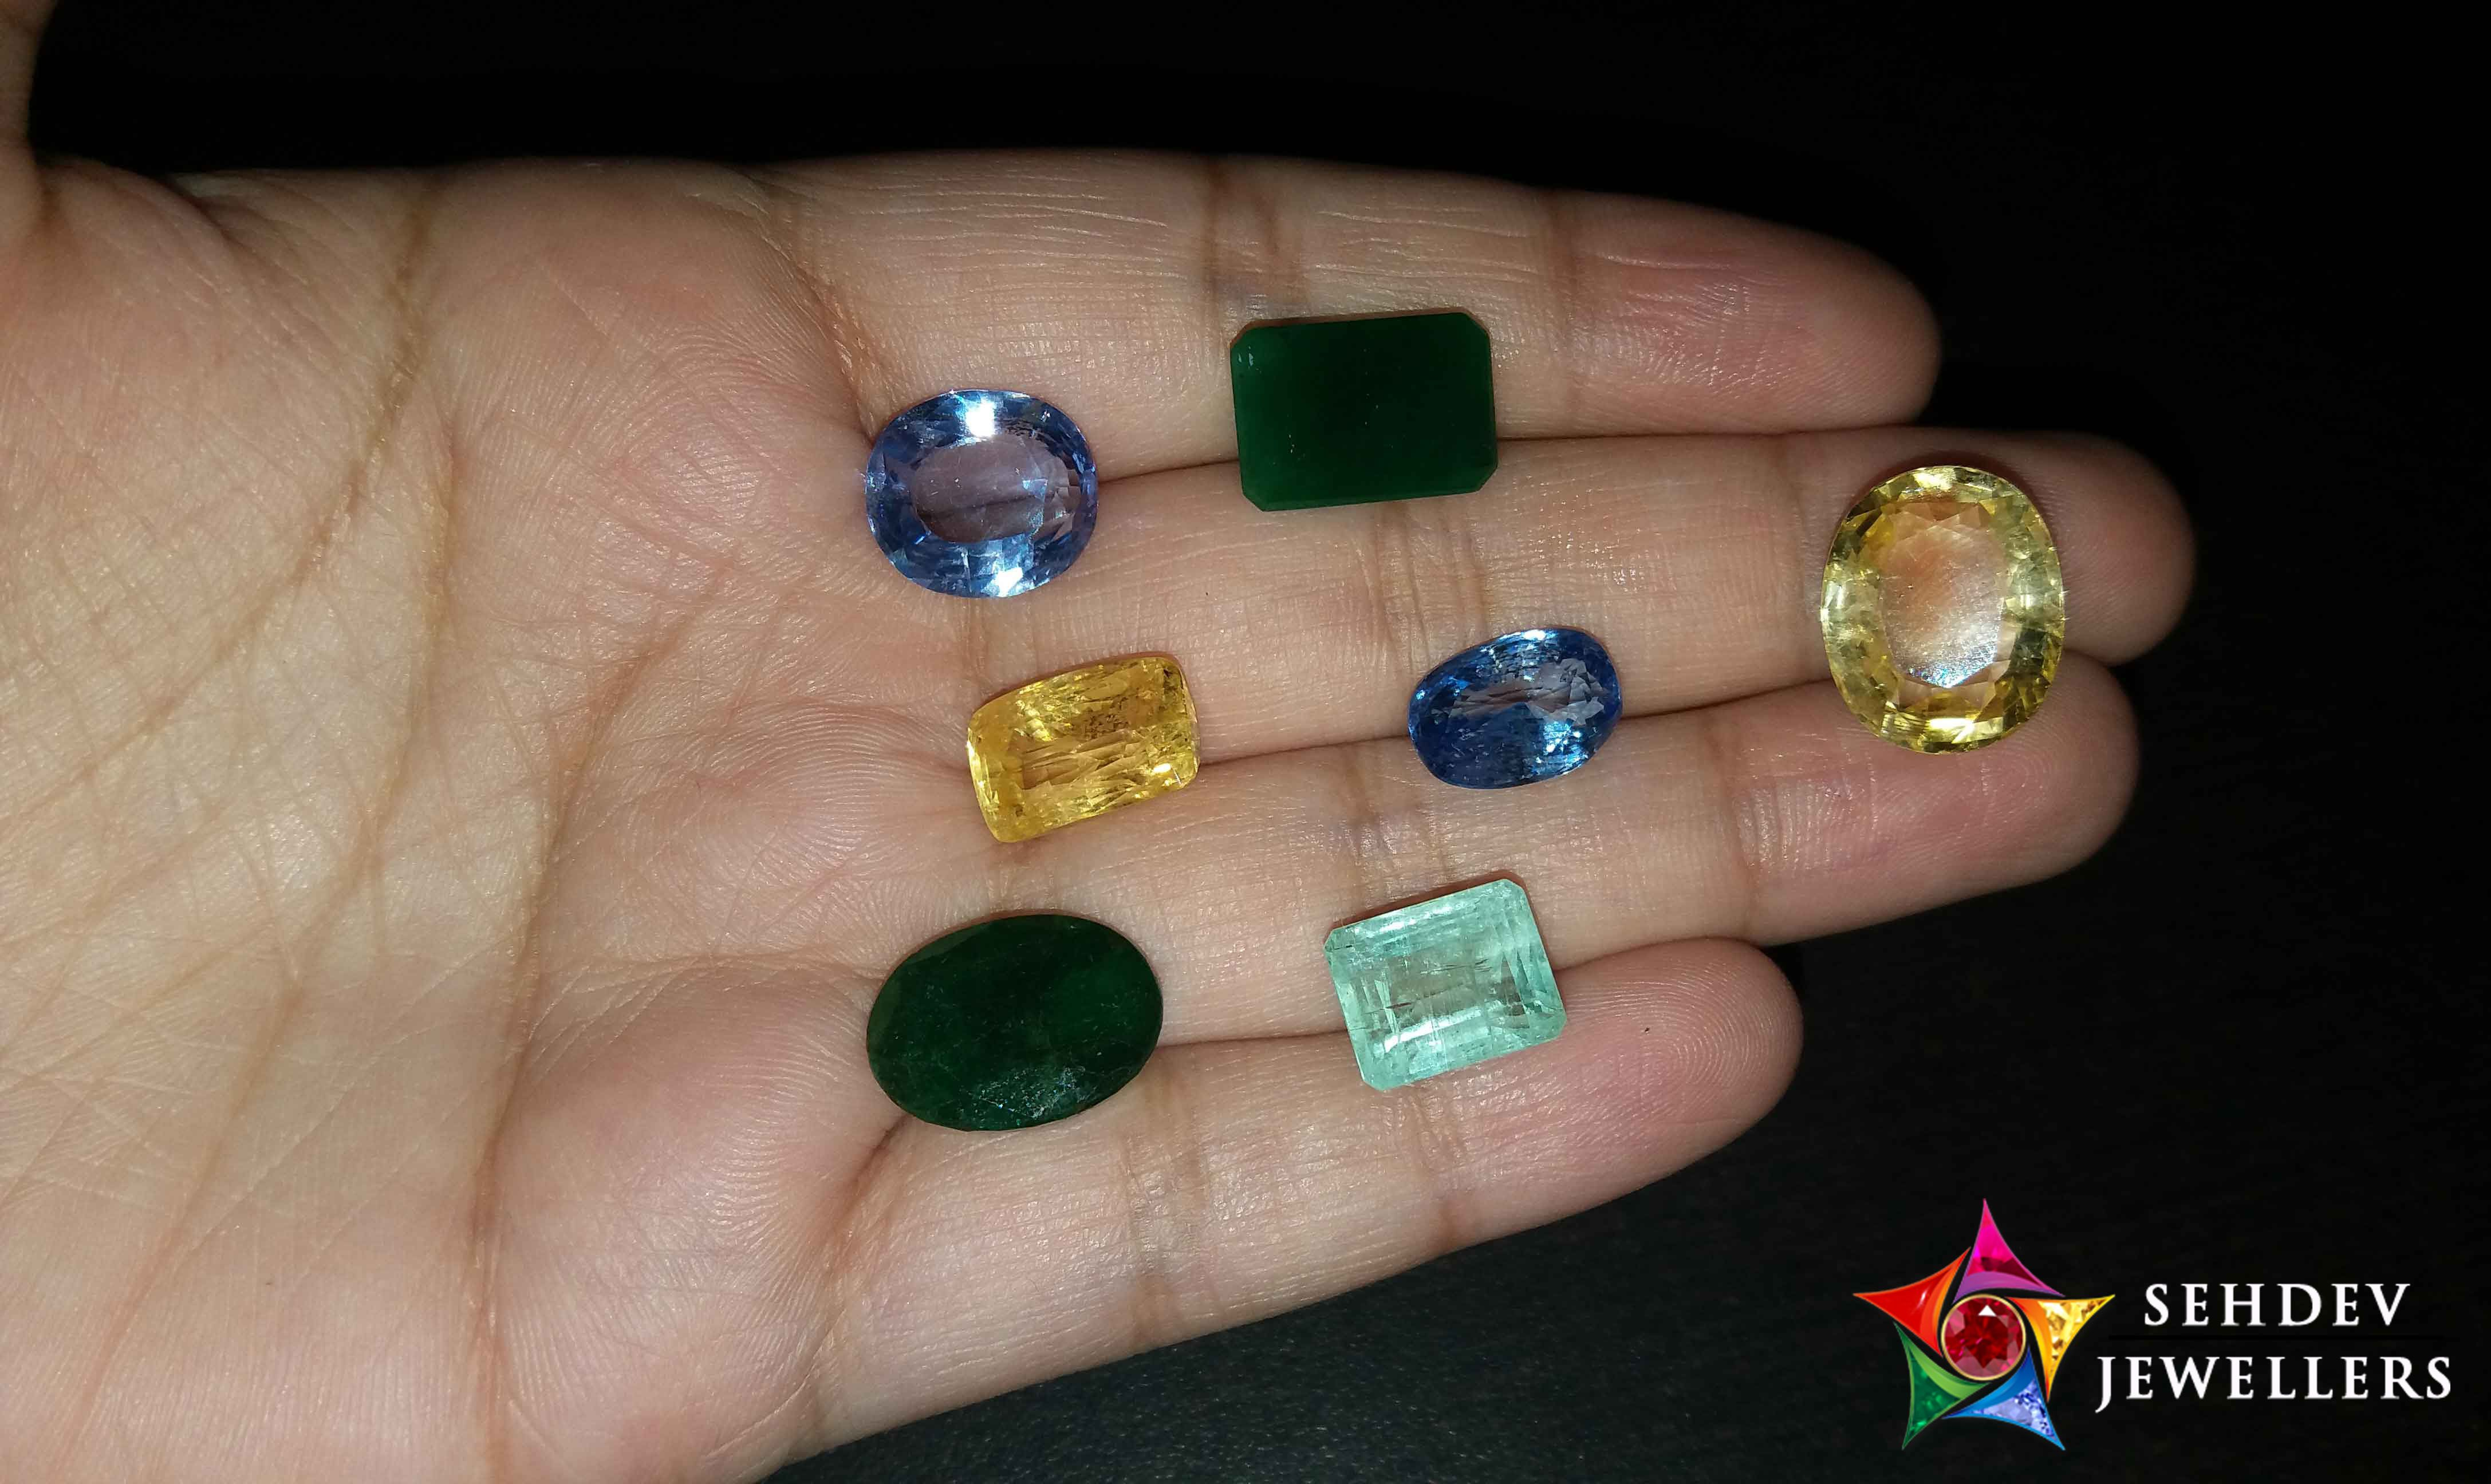 Shop for certified natural gemstones at the online store of